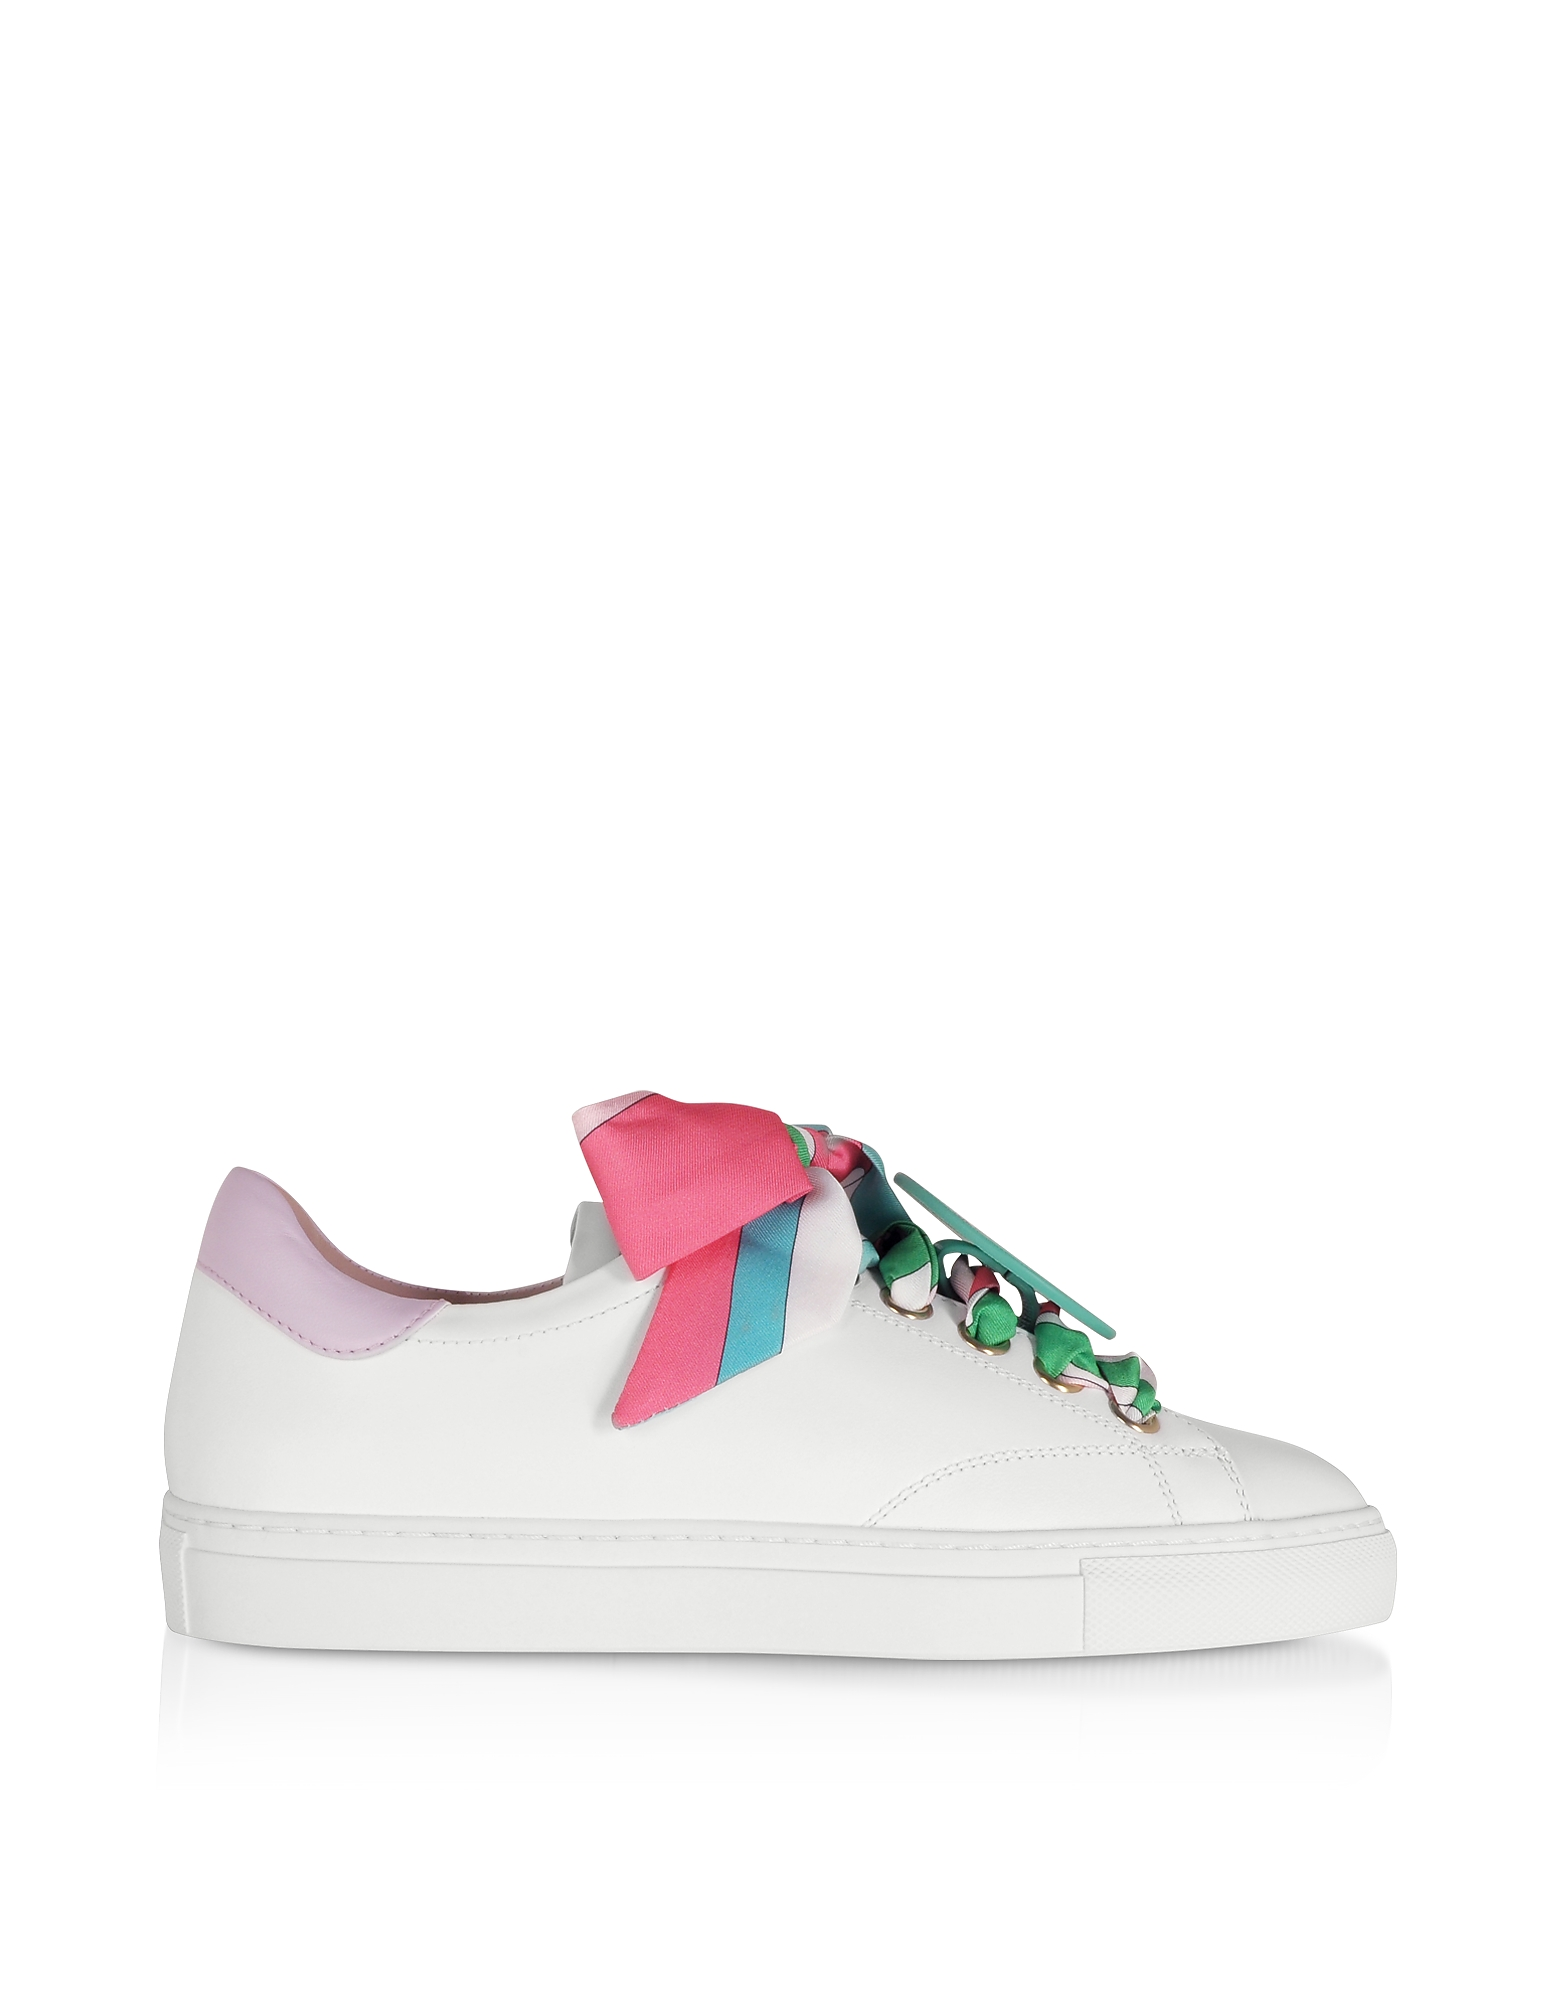 White/Lilac Leather Women's Sneakers